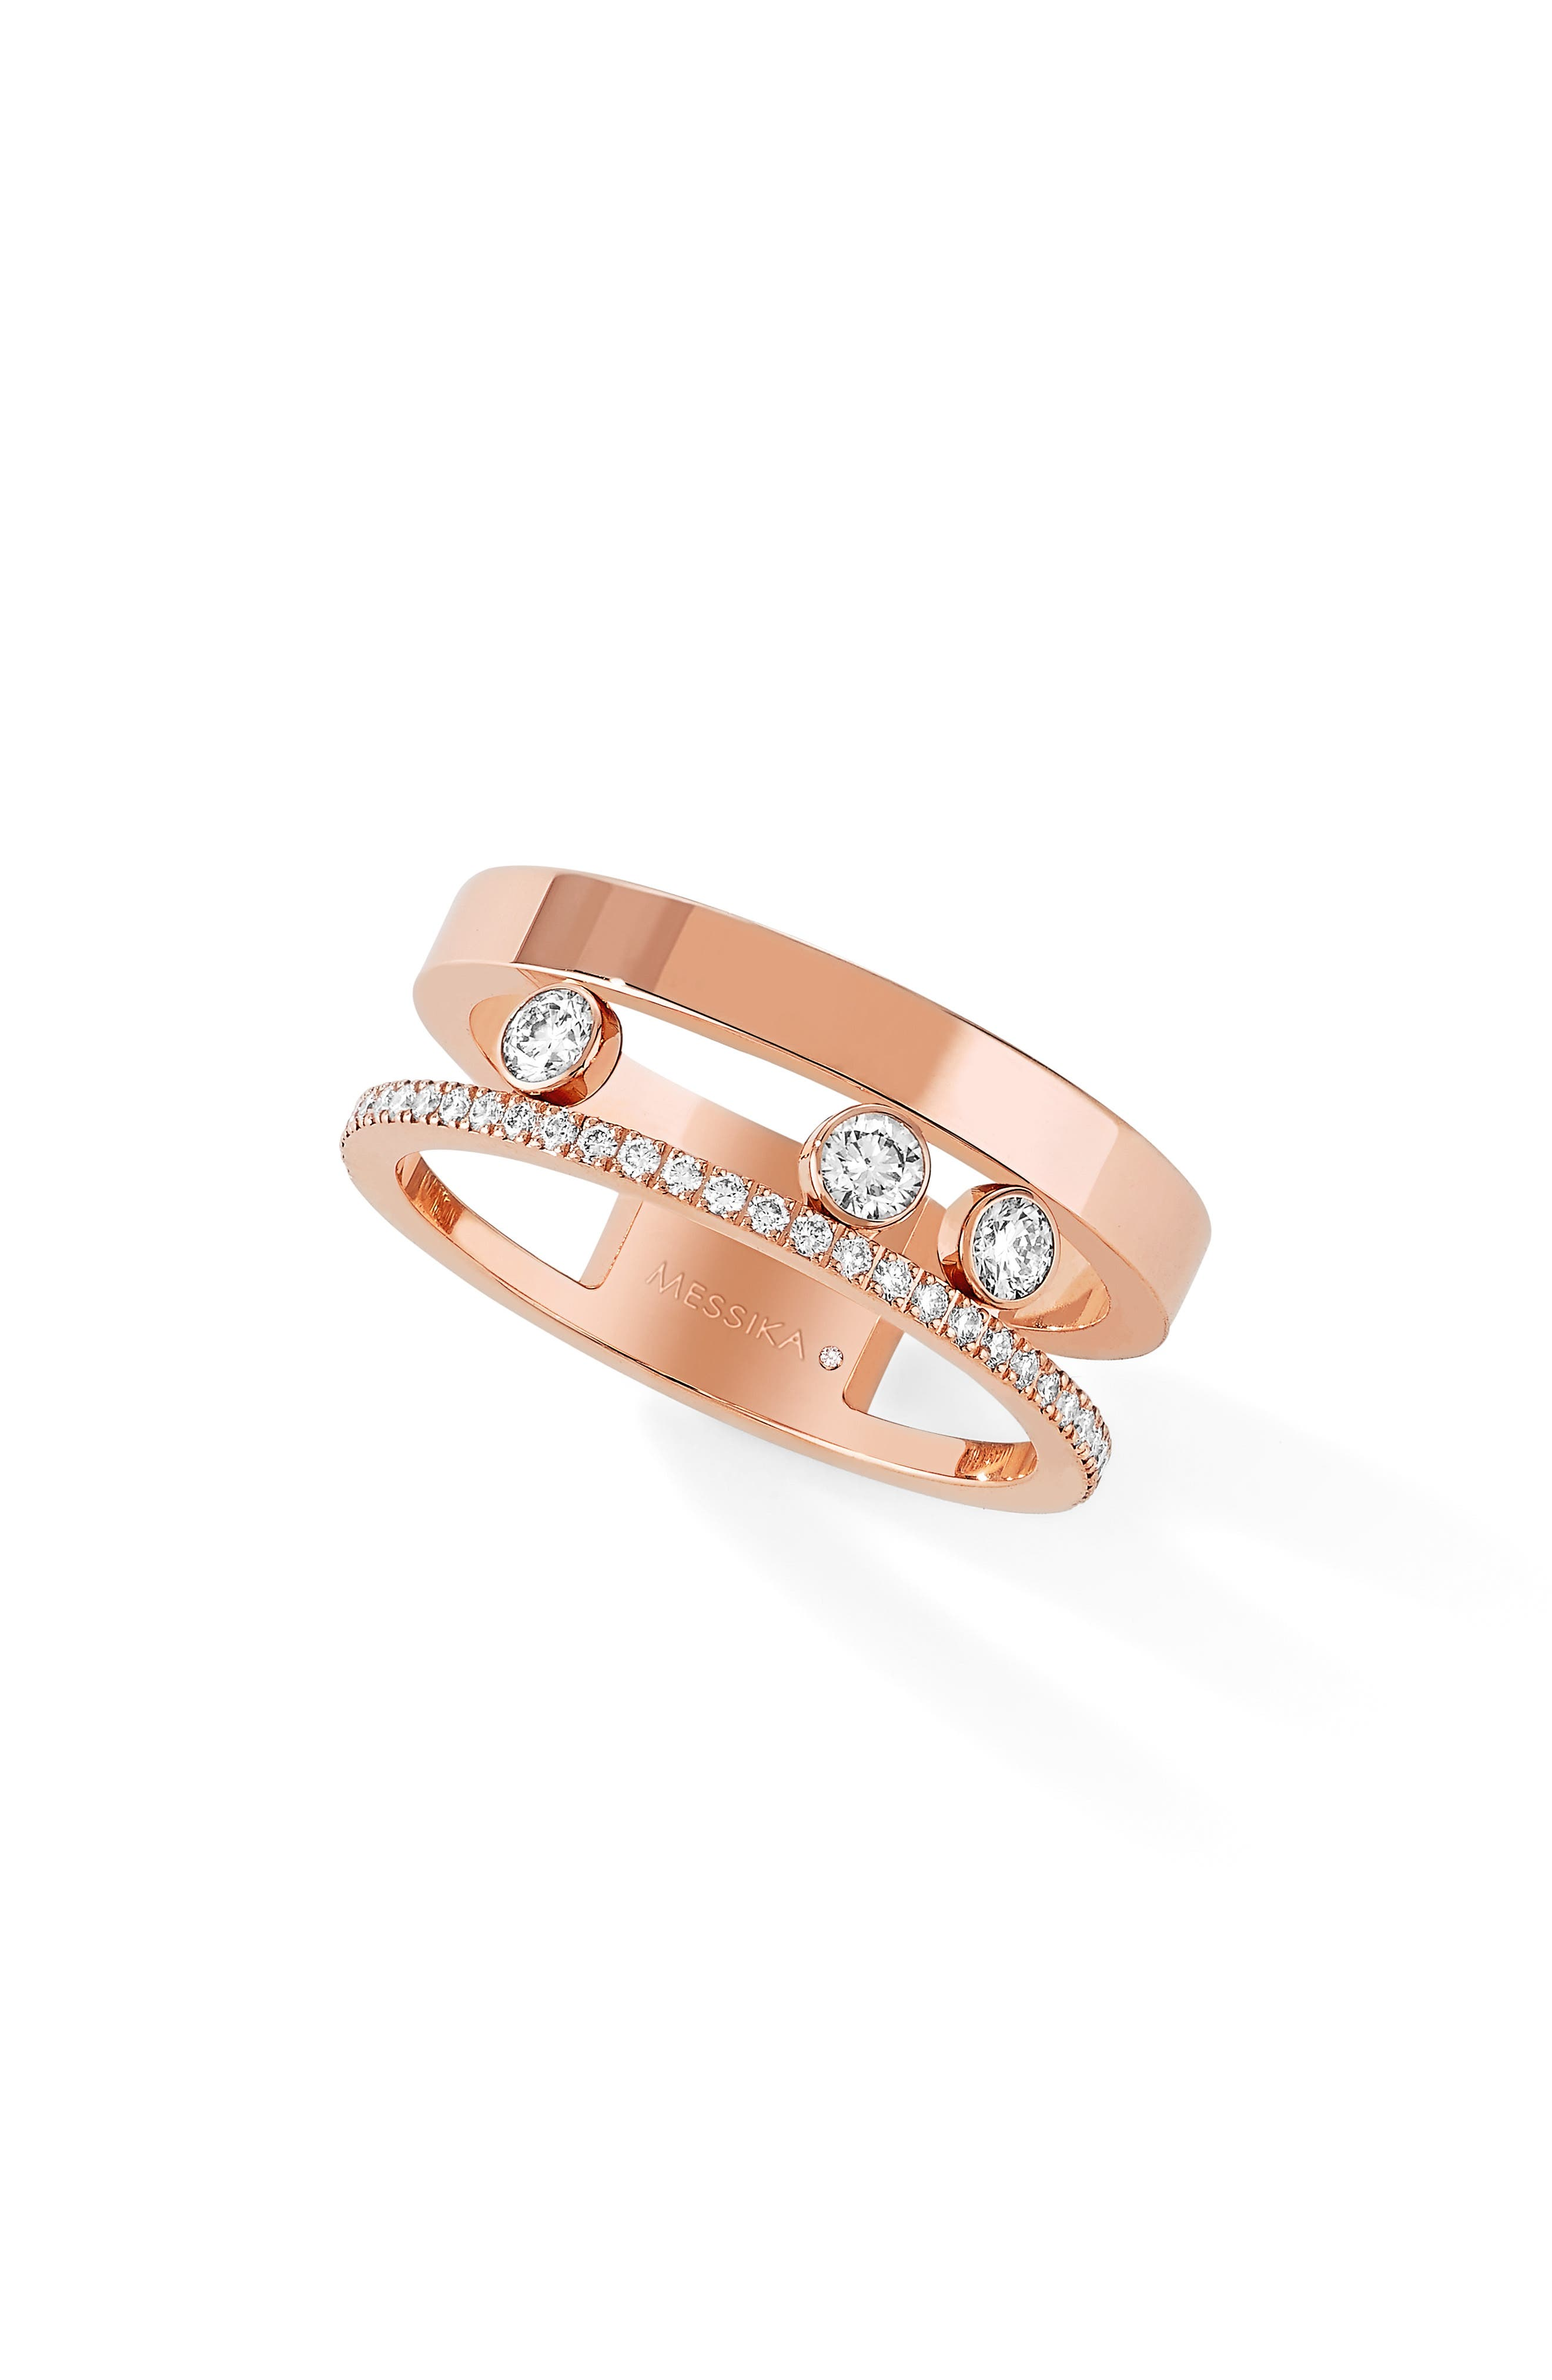 Main Image - Messika Two Row Move Romane Diamond Ring